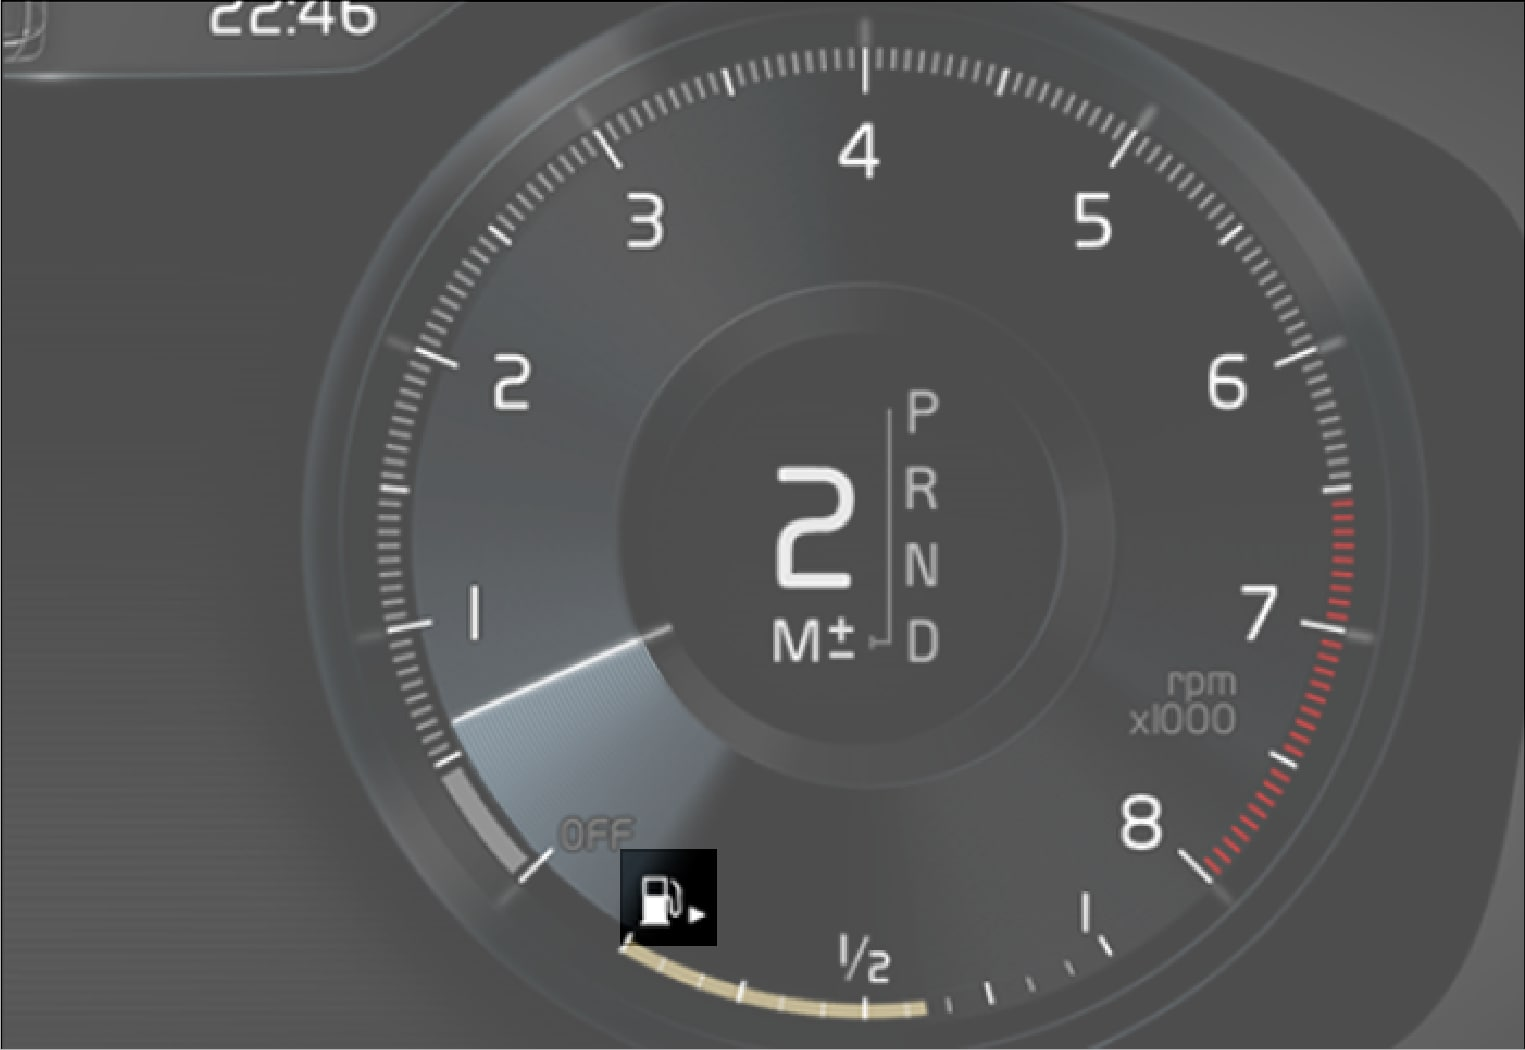 P5-1917-All-Fuel gauge in 12 inch driver display